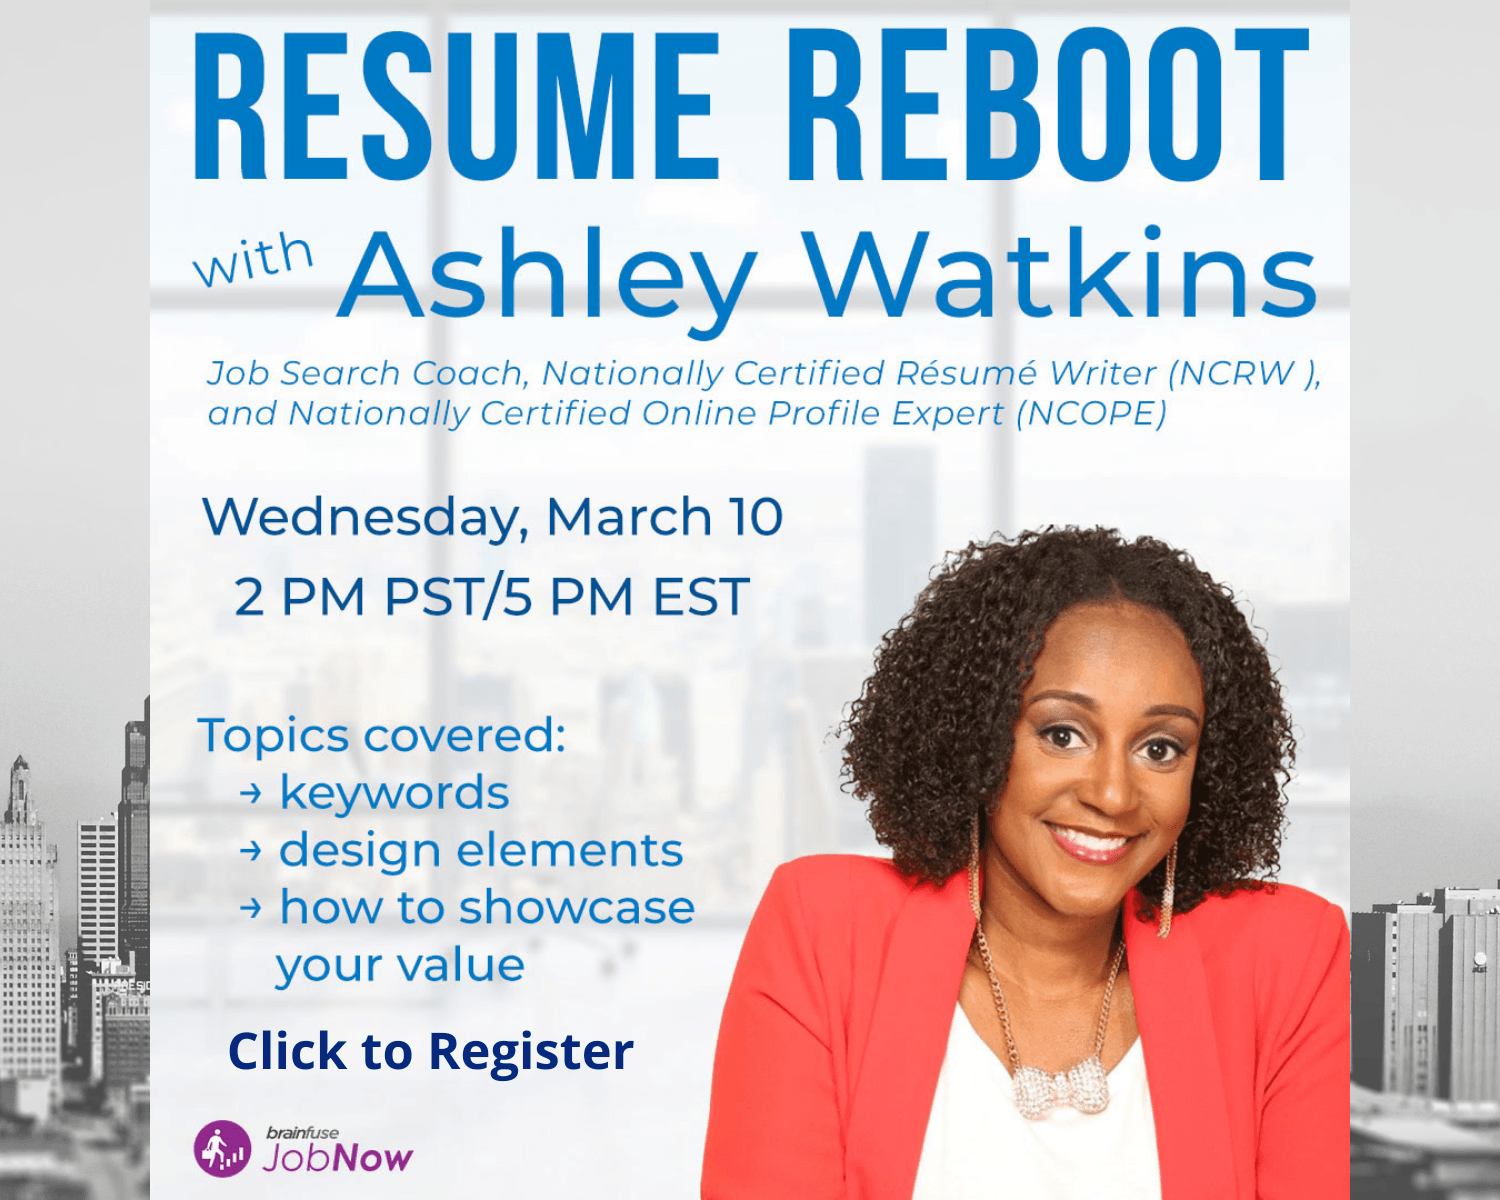 Resume Reboot March 10 at 2pm via zoom